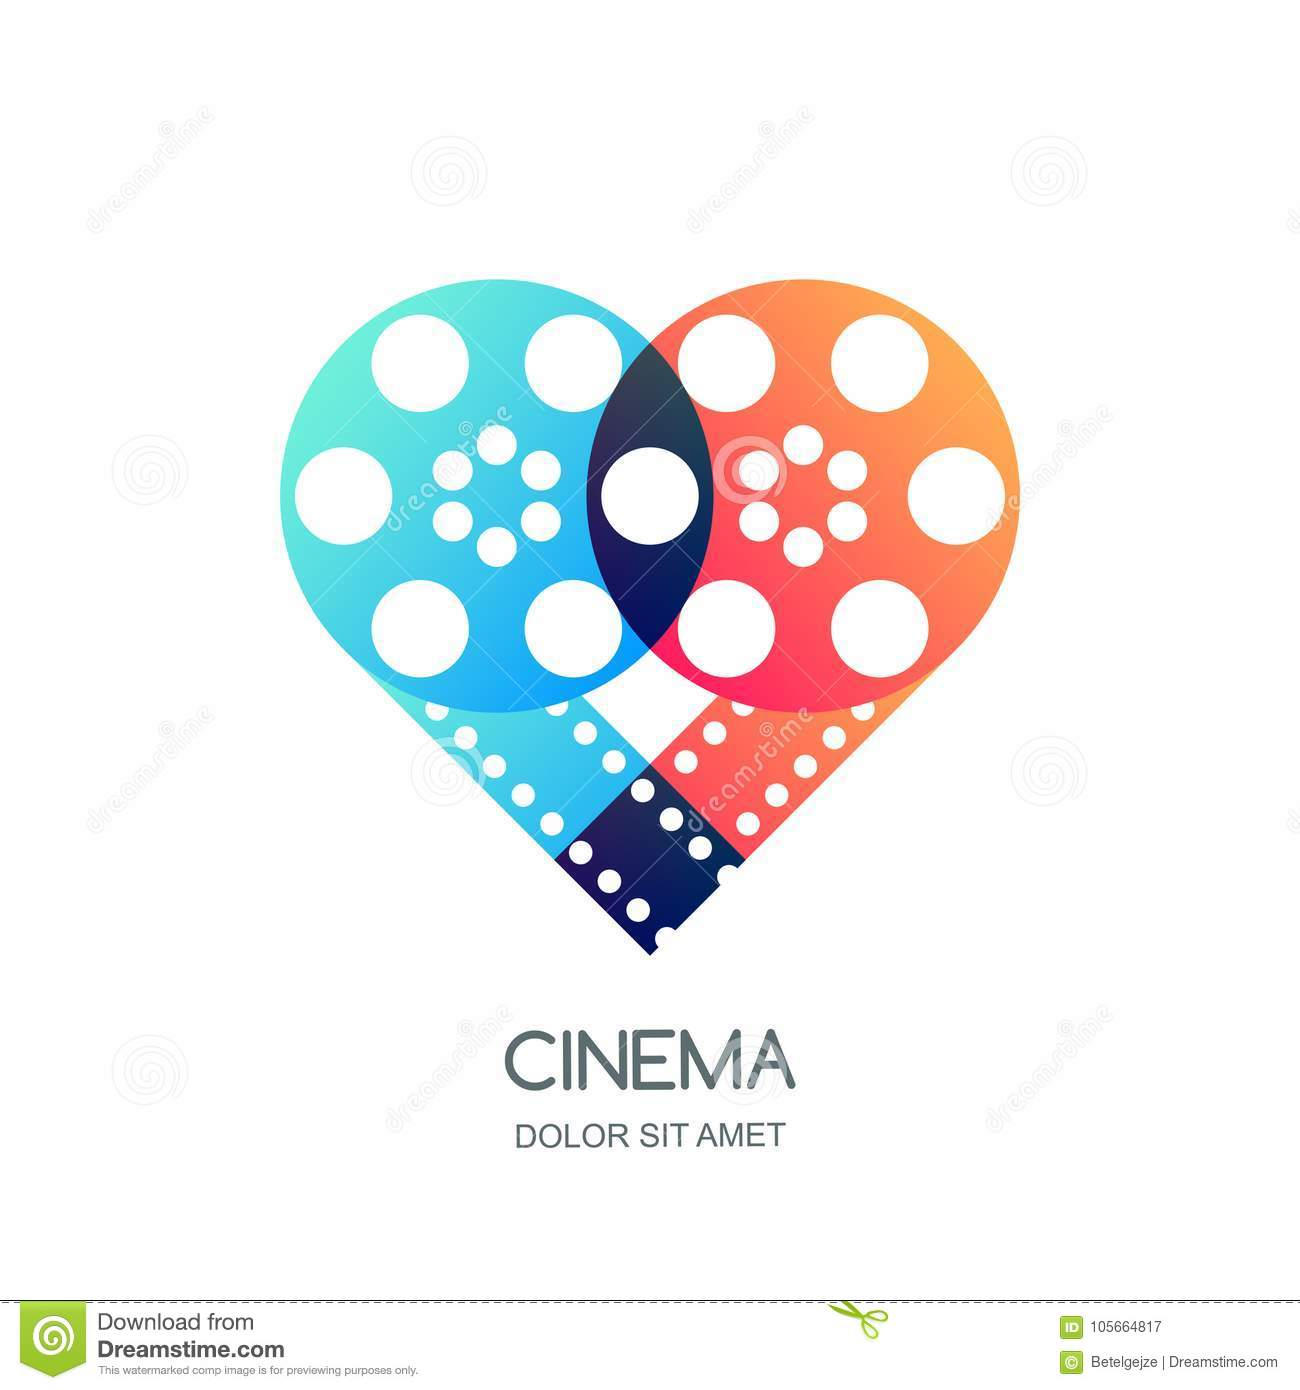 Cinema festival logo, icon, emblem design. Overlapping film reel and filmstrip in heart shape. Video like symbol